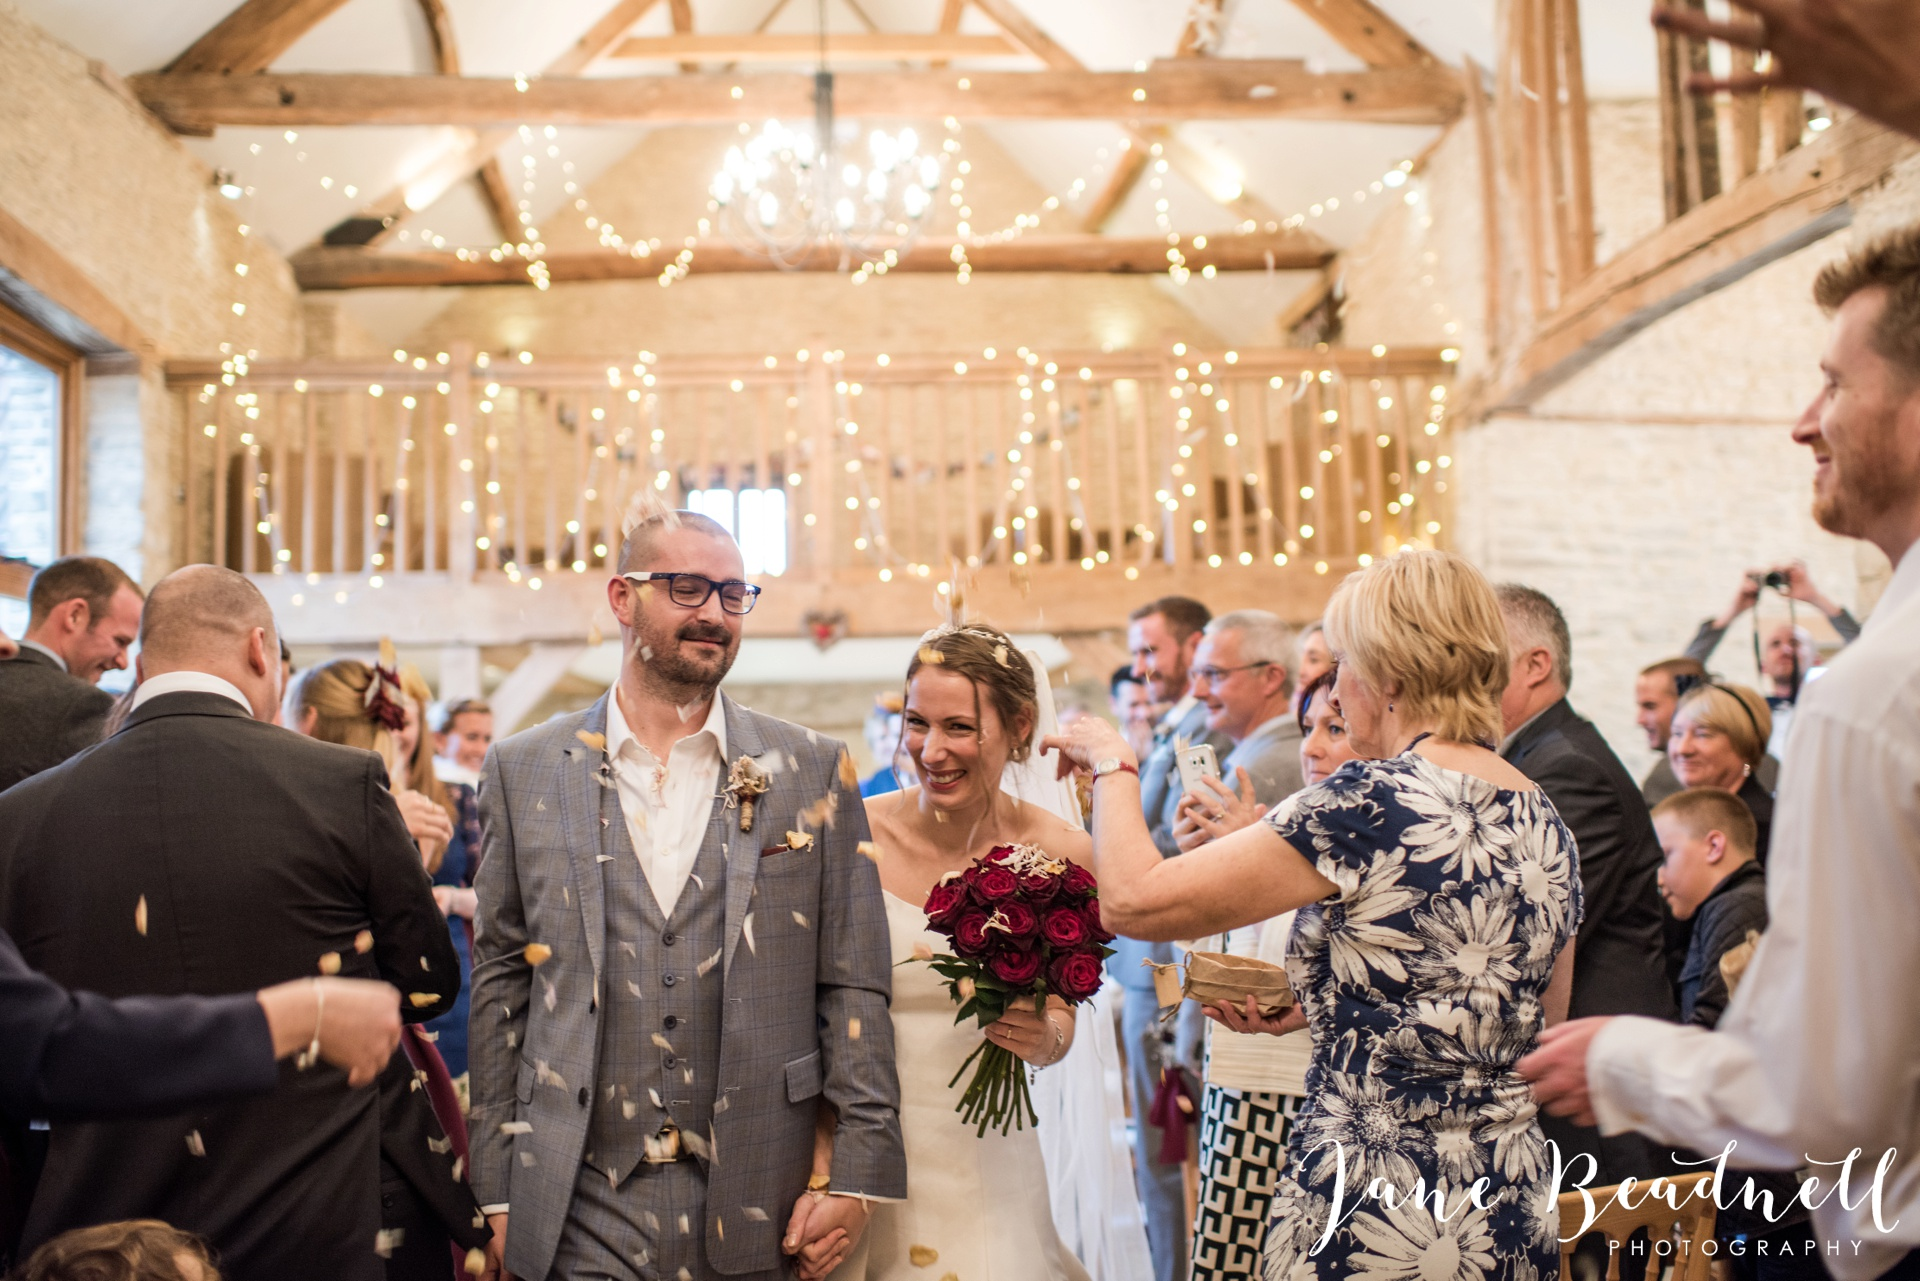 The Kingcote Barn Bristol Yorkshire and destination wedding photographer Jane Beadnell Photography_0053